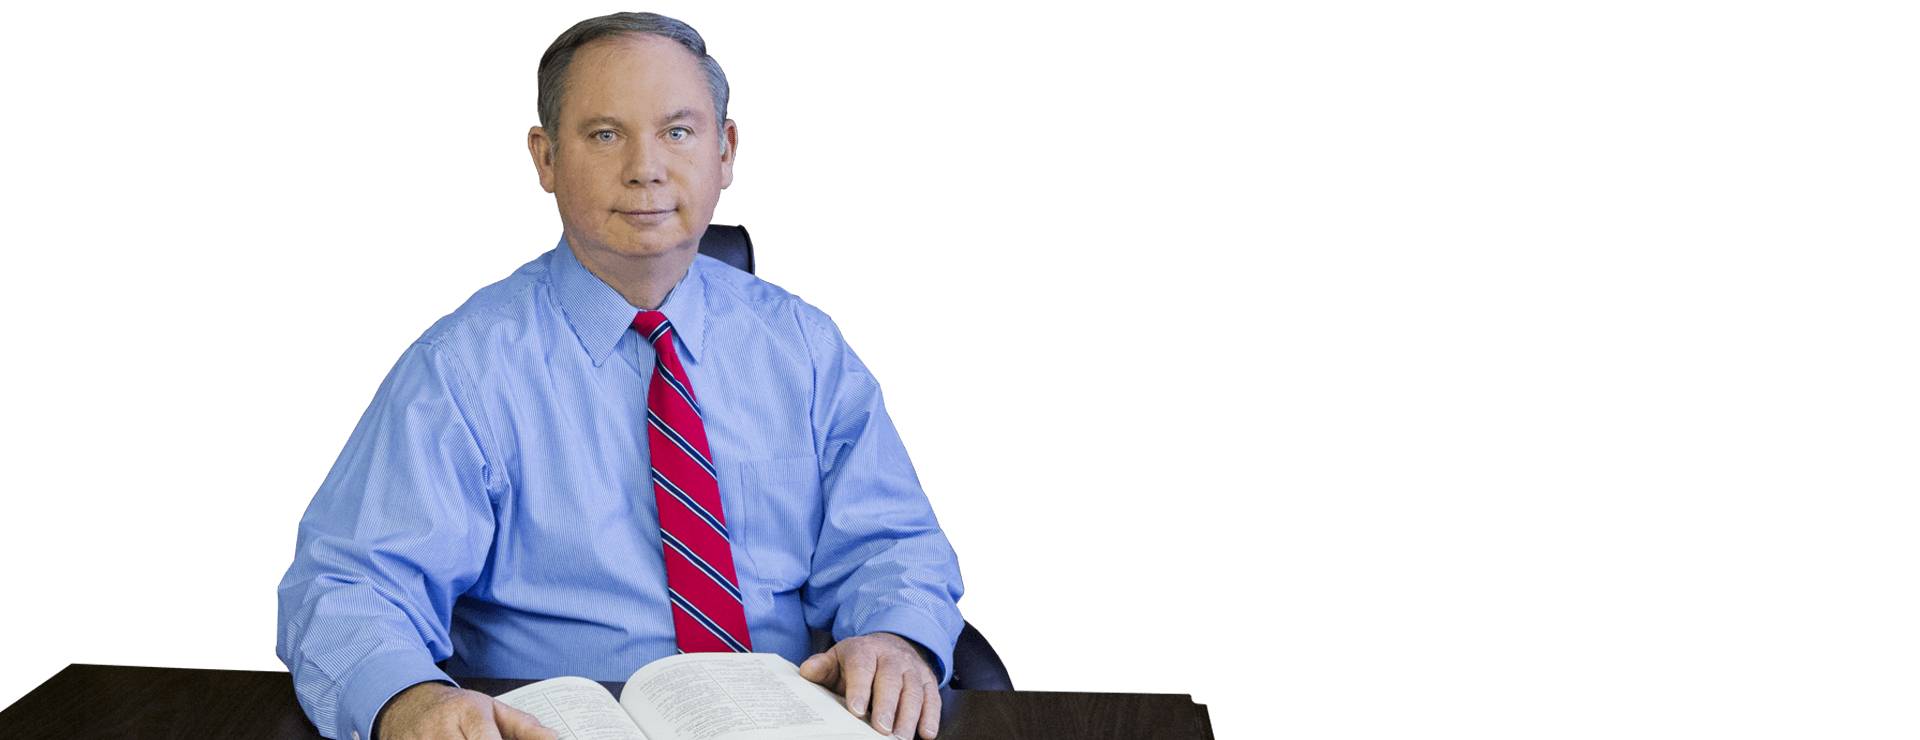 Attorney Johnson City TN | Divorce, Farmily Law & Personal Injury Lawyer